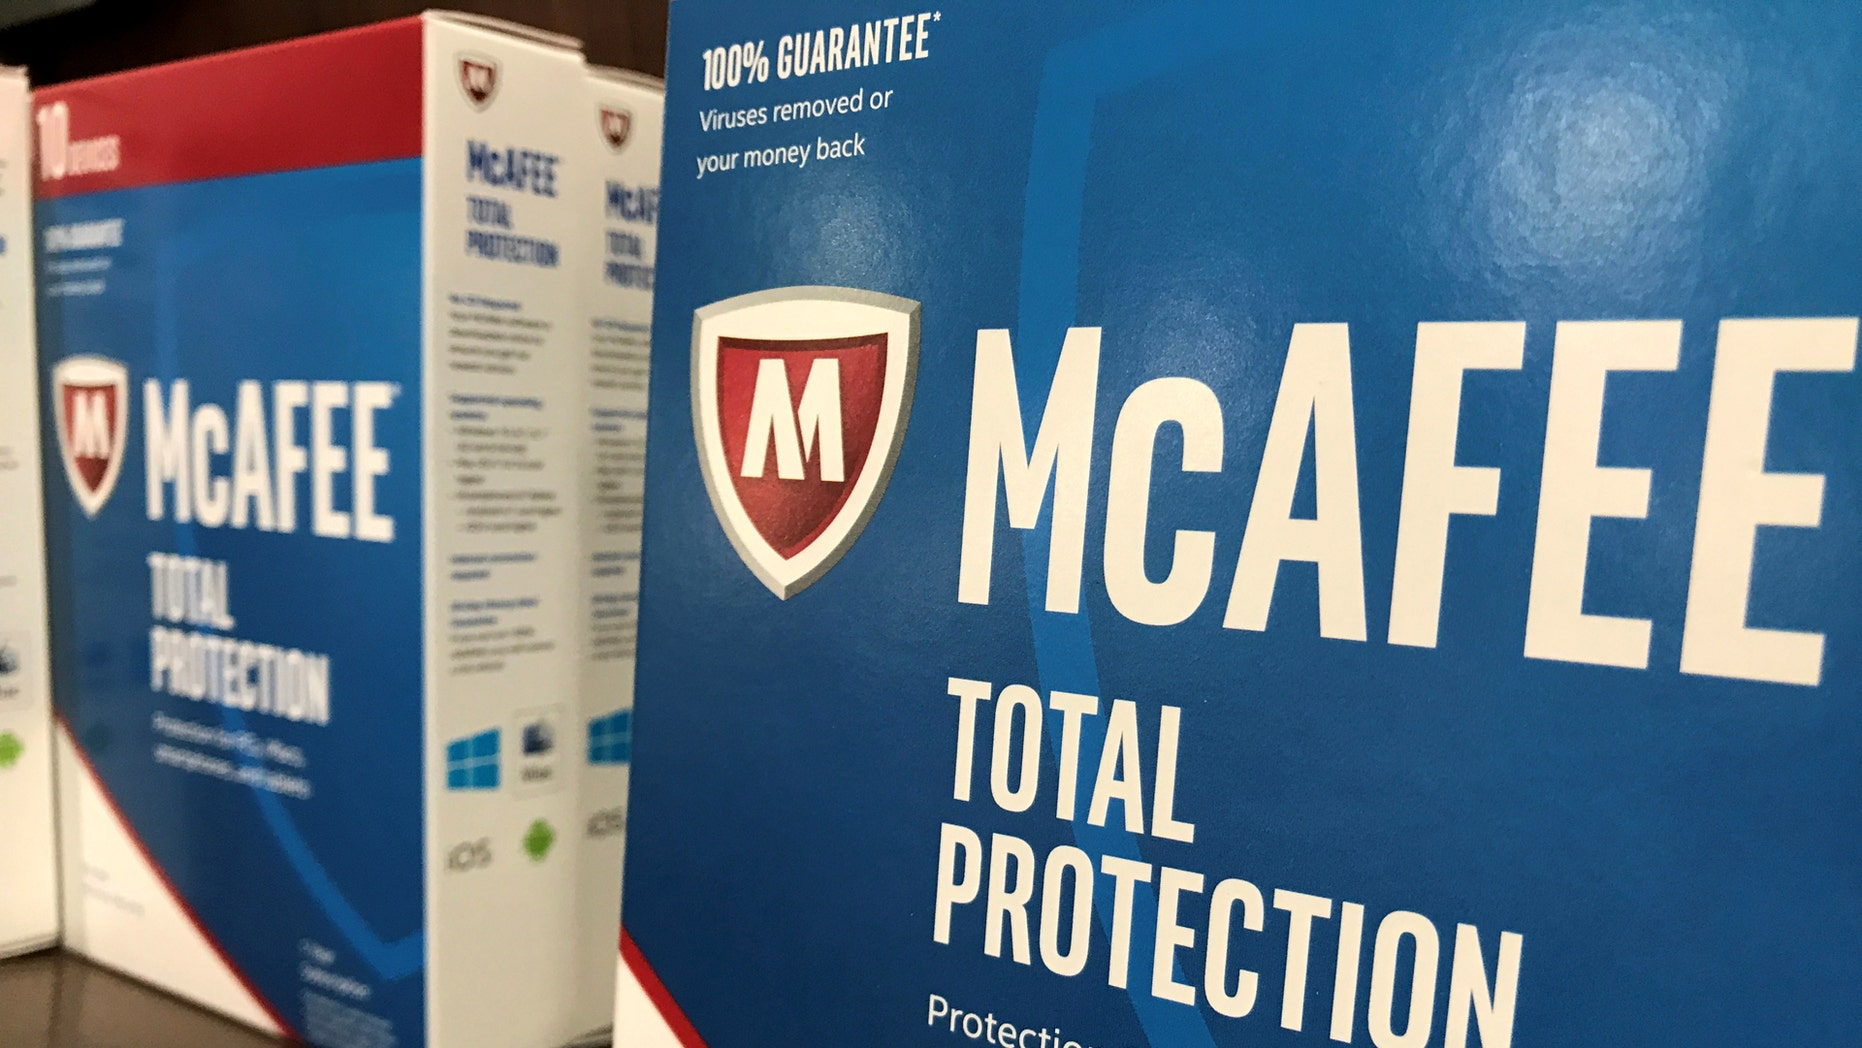 File photo: McAfee computer security software is shown for sale at a computer store in San Marcos, California, U.S., May 15, 2017. (REUTERS/Mike Blake)